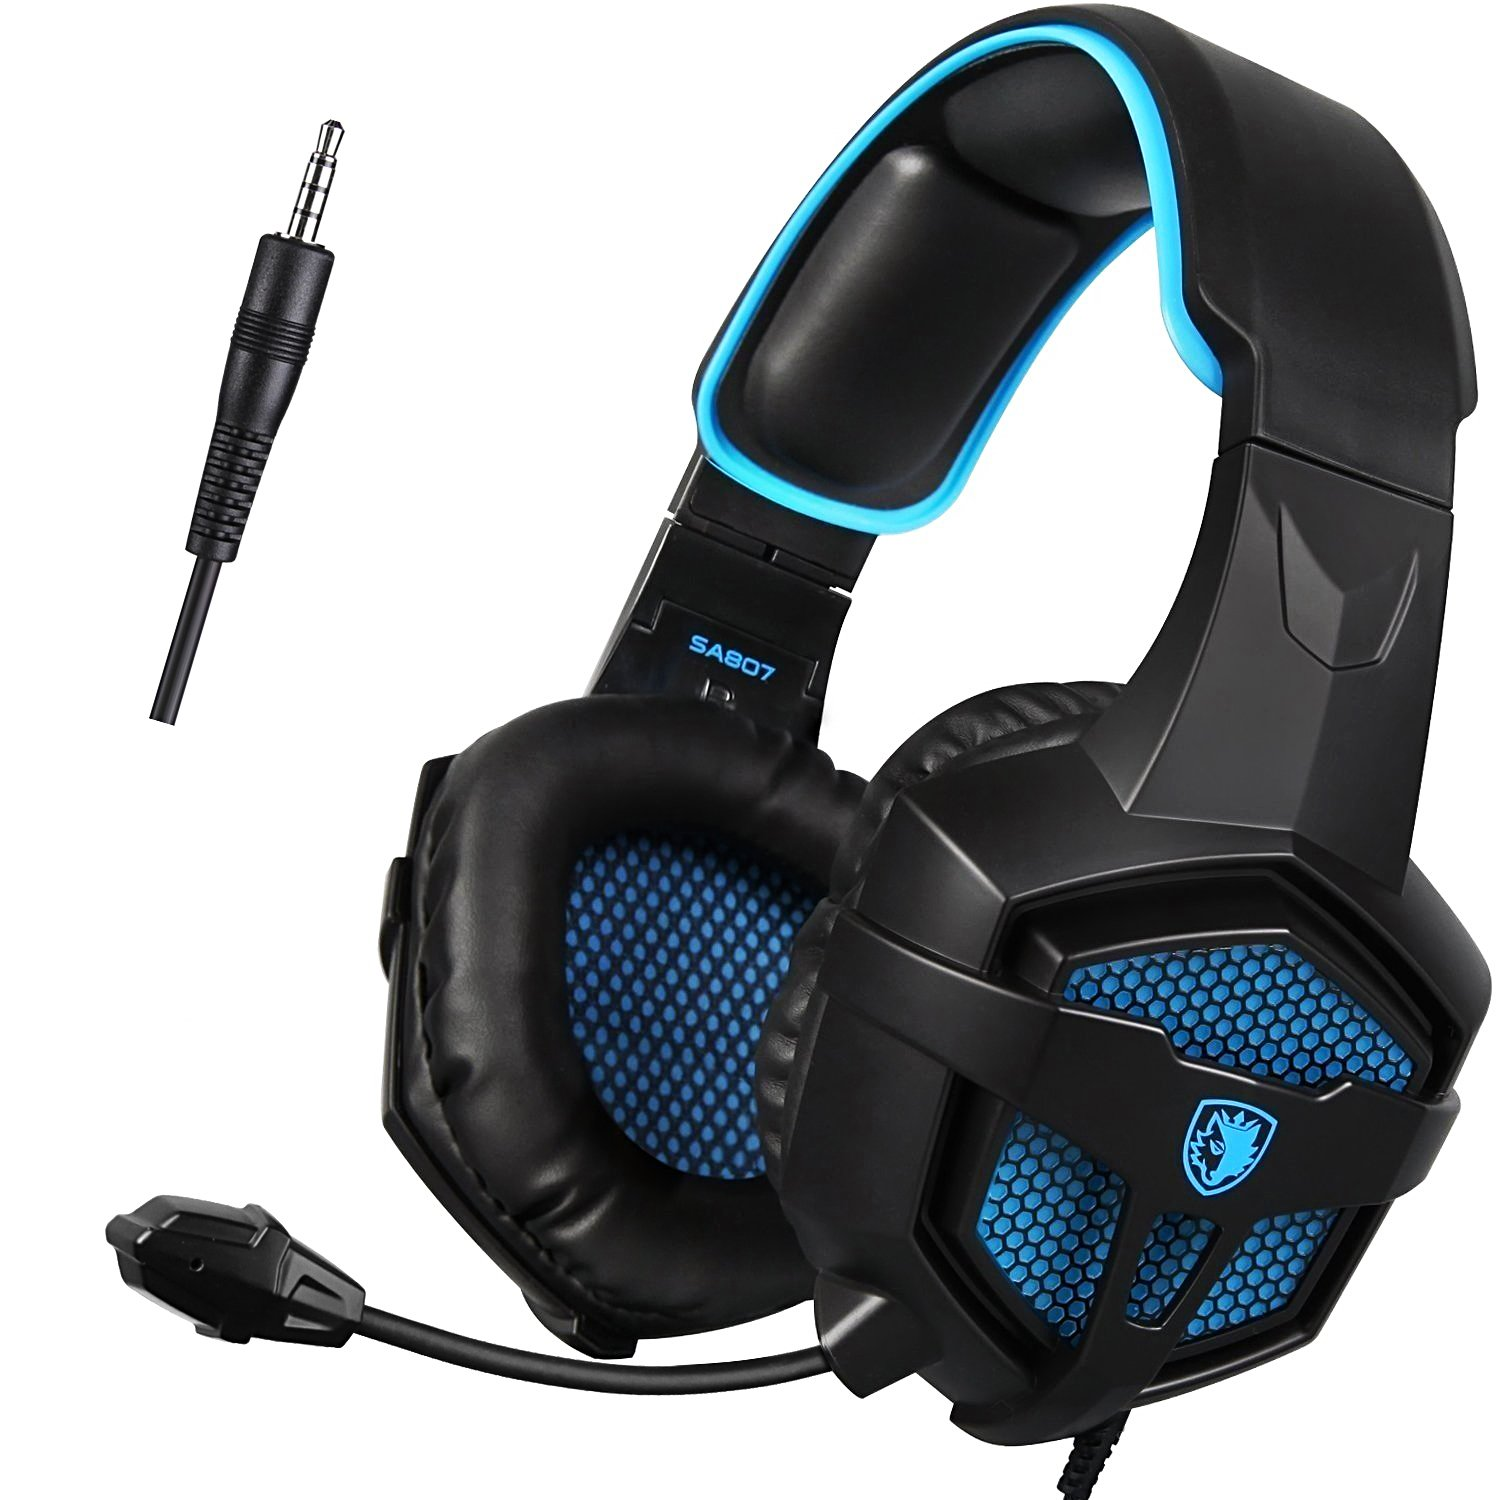 SADES SA-807 best gaming headphones of 2019 for gamers